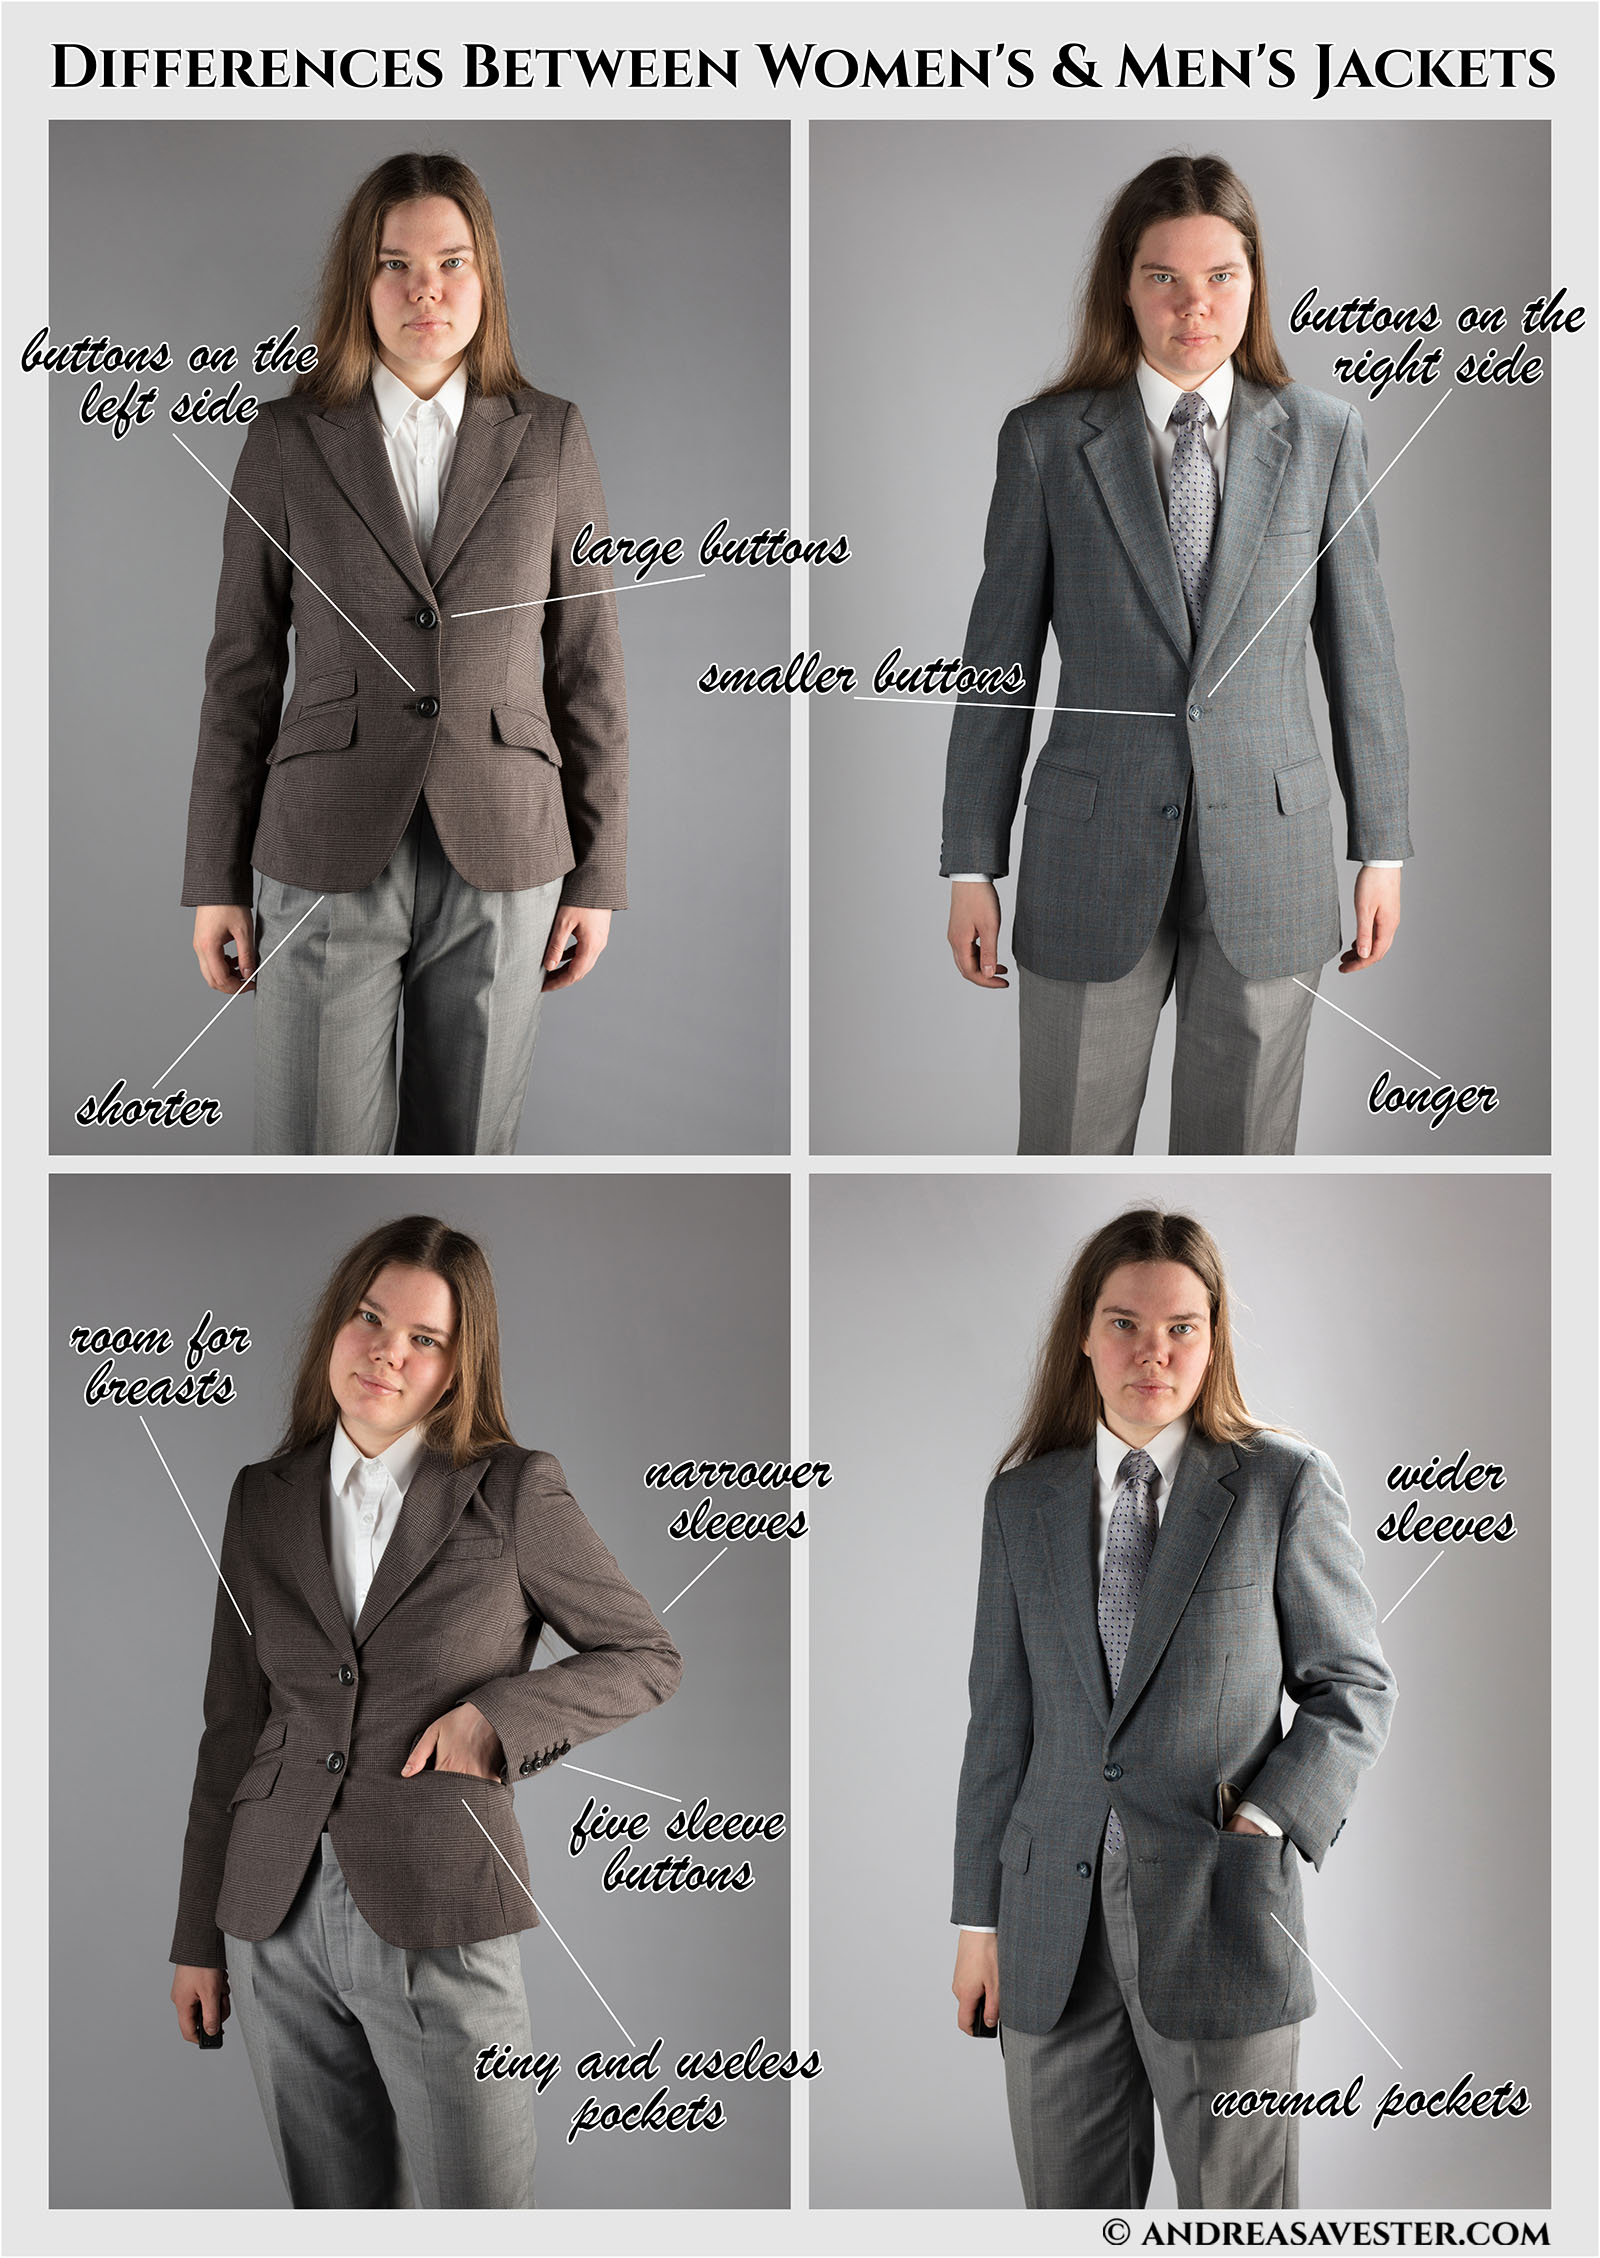 Differences between women's and men's jackets.